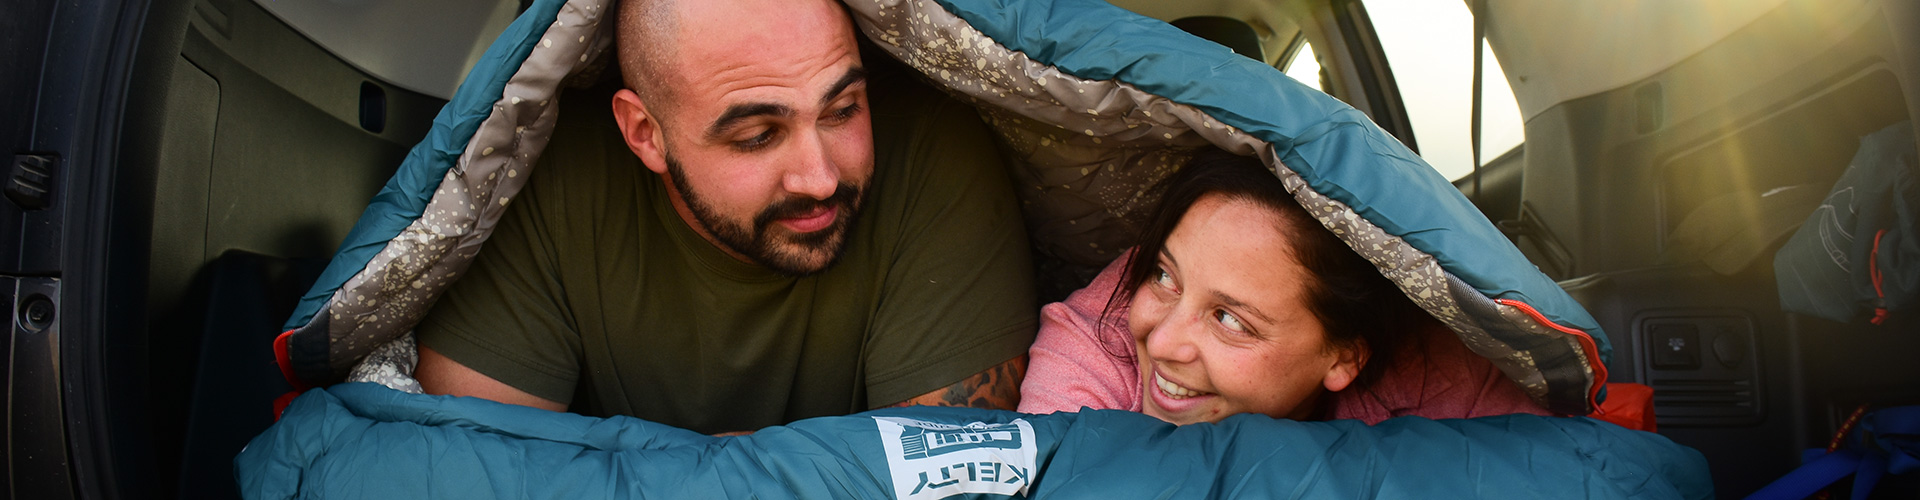 Man and woman in sleeping bags